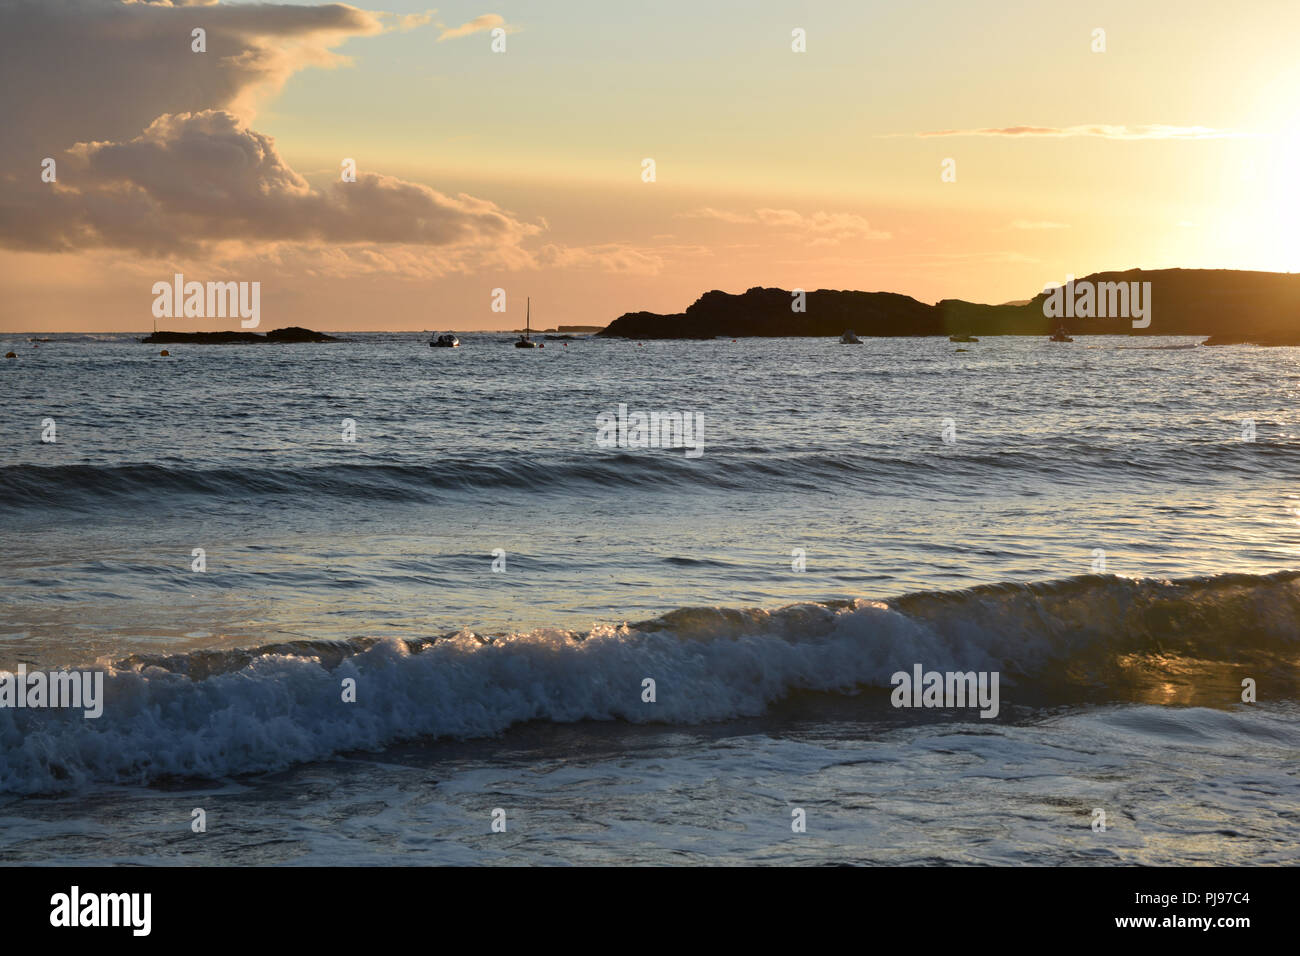 Sunset over Trearddur Bay near Holyhead, Anglesea, North Wales with sunlight reflecting off the water and waves. Orange sky silhouette landscape seasc - Stock Image